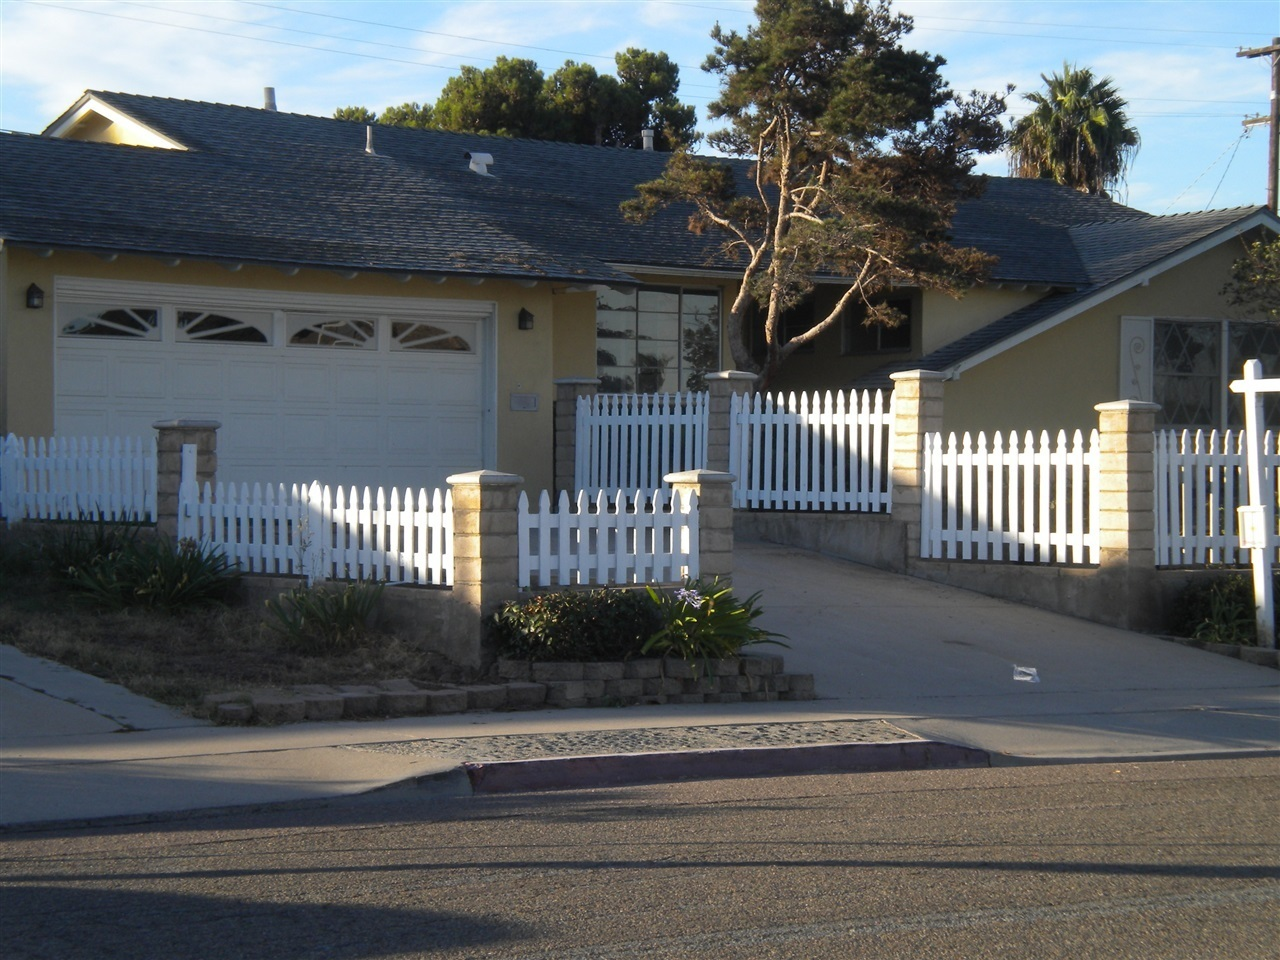 mobile home parks in chula vista ca with 5981954 on Advantage Homes Hayward 2 as well New Toddler Playgroup Groups further Teresina Apartments Chula Vista Ca also Scope Orthotics Prosthetics 19959063 additionally 8170144181.